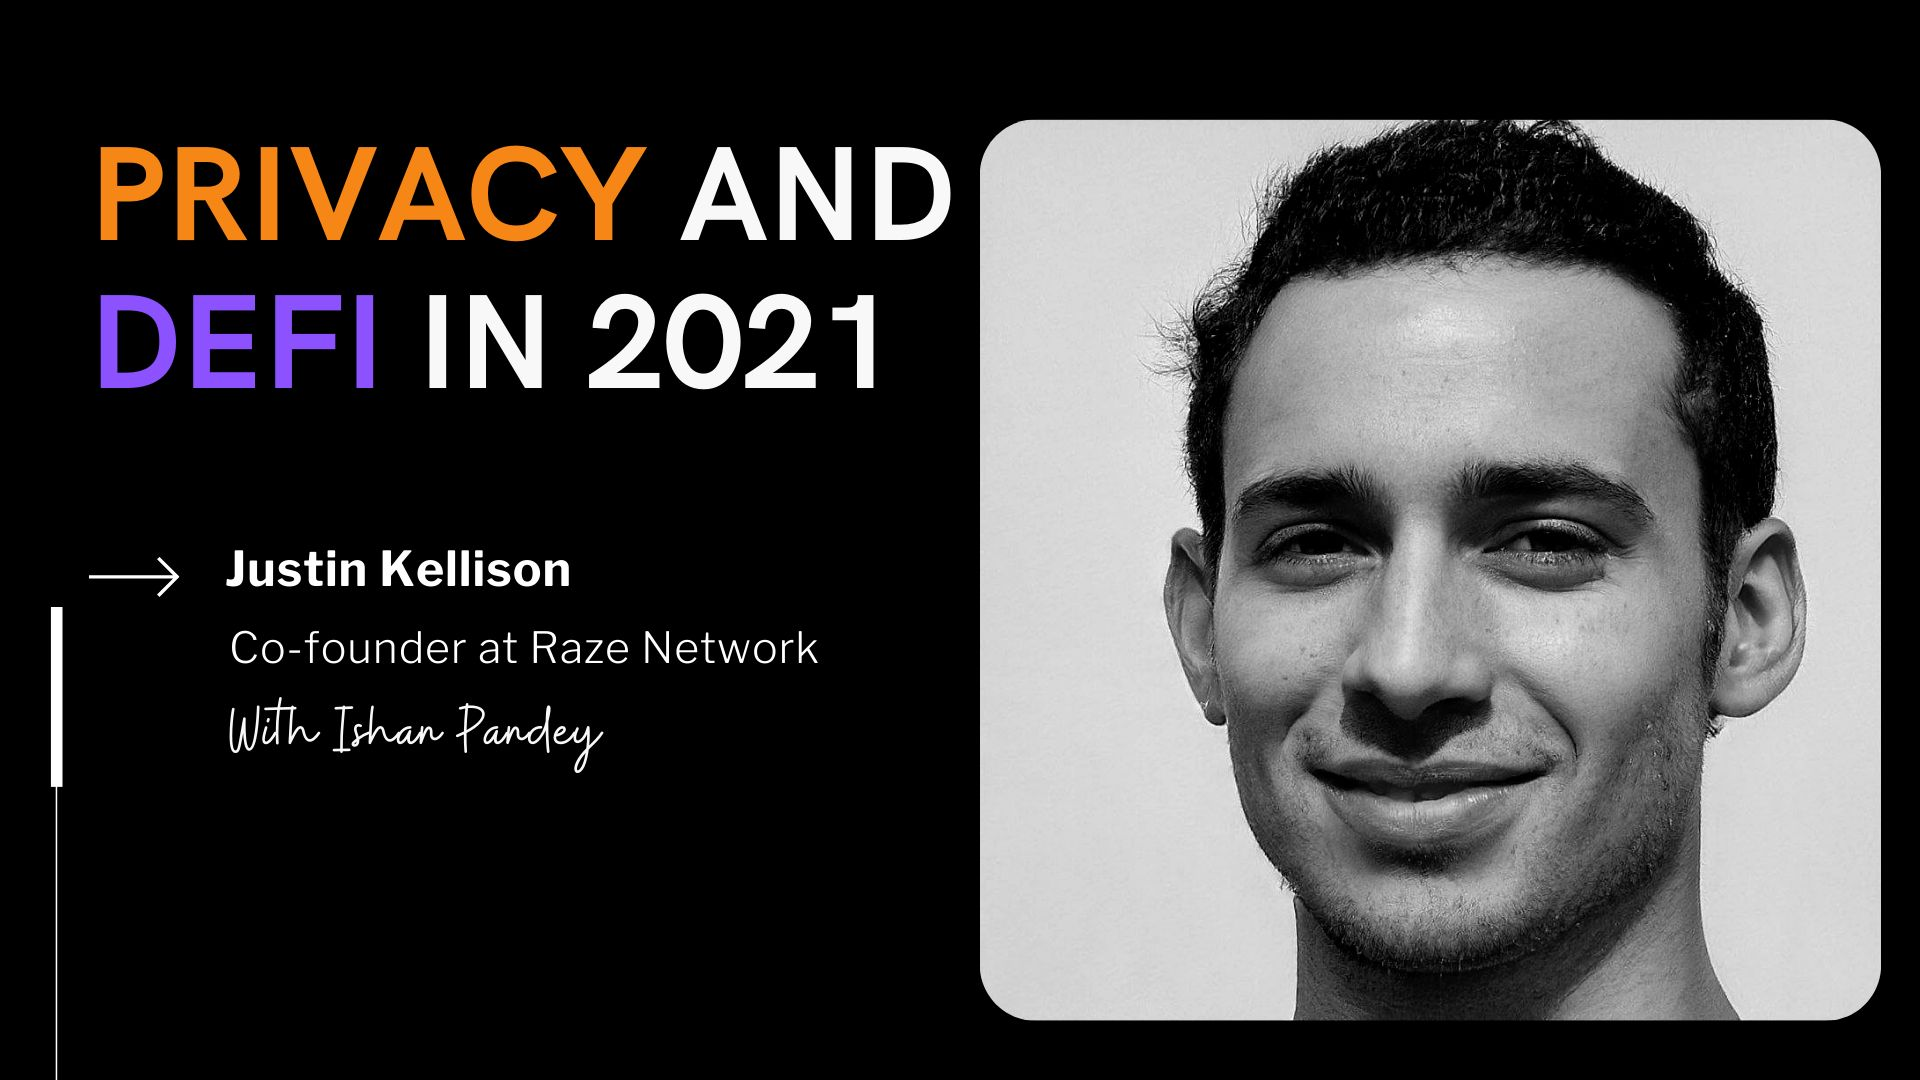 /privacy-is-the-fundamental-pillar-of-defi-justin-kellison-v9s34pp feature image